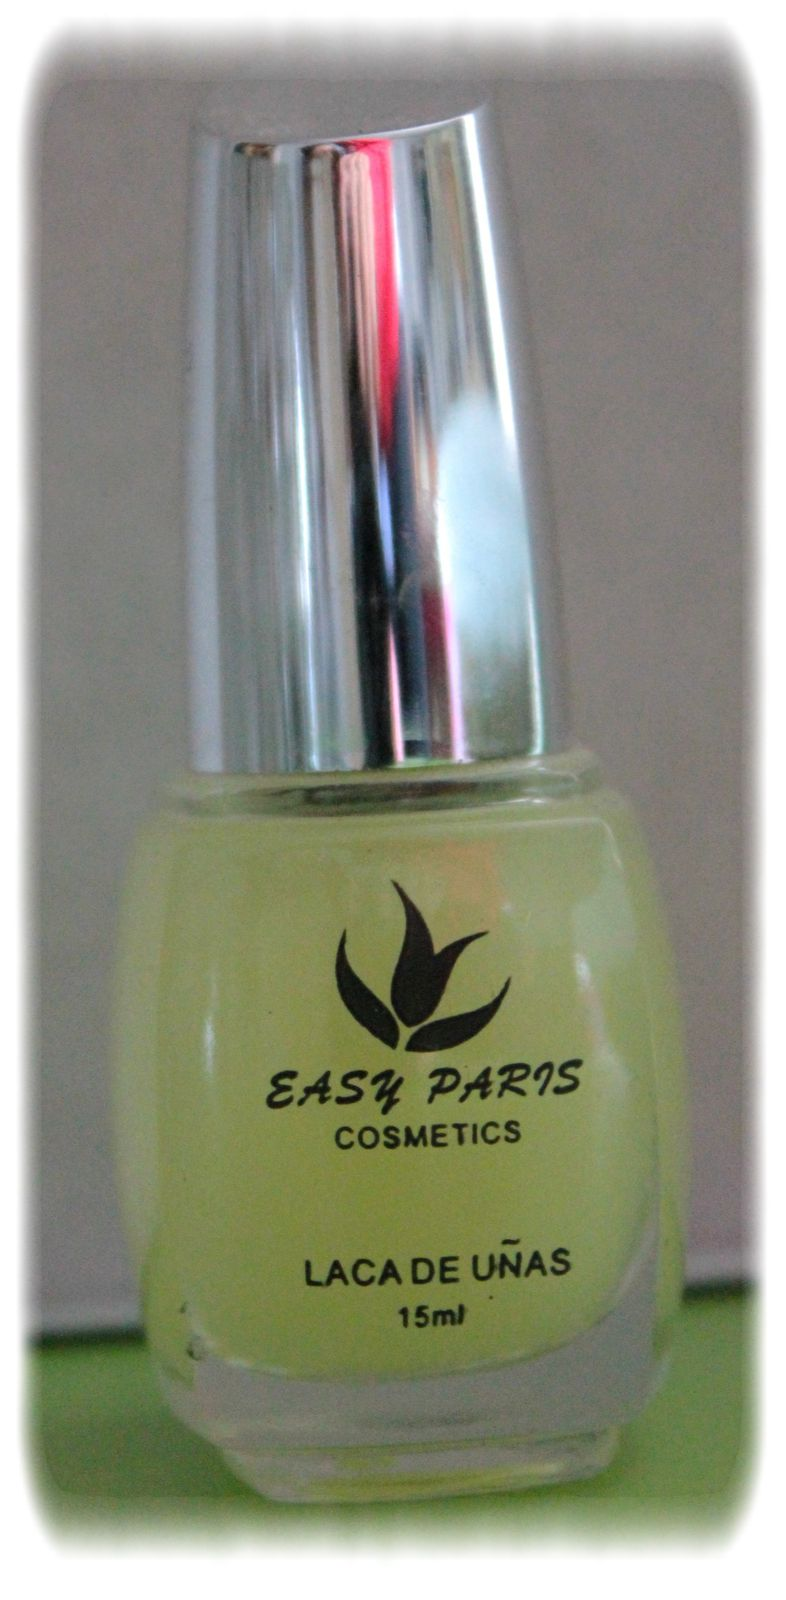 Easy Paris n° 607, c'est un top coat phosphorescent